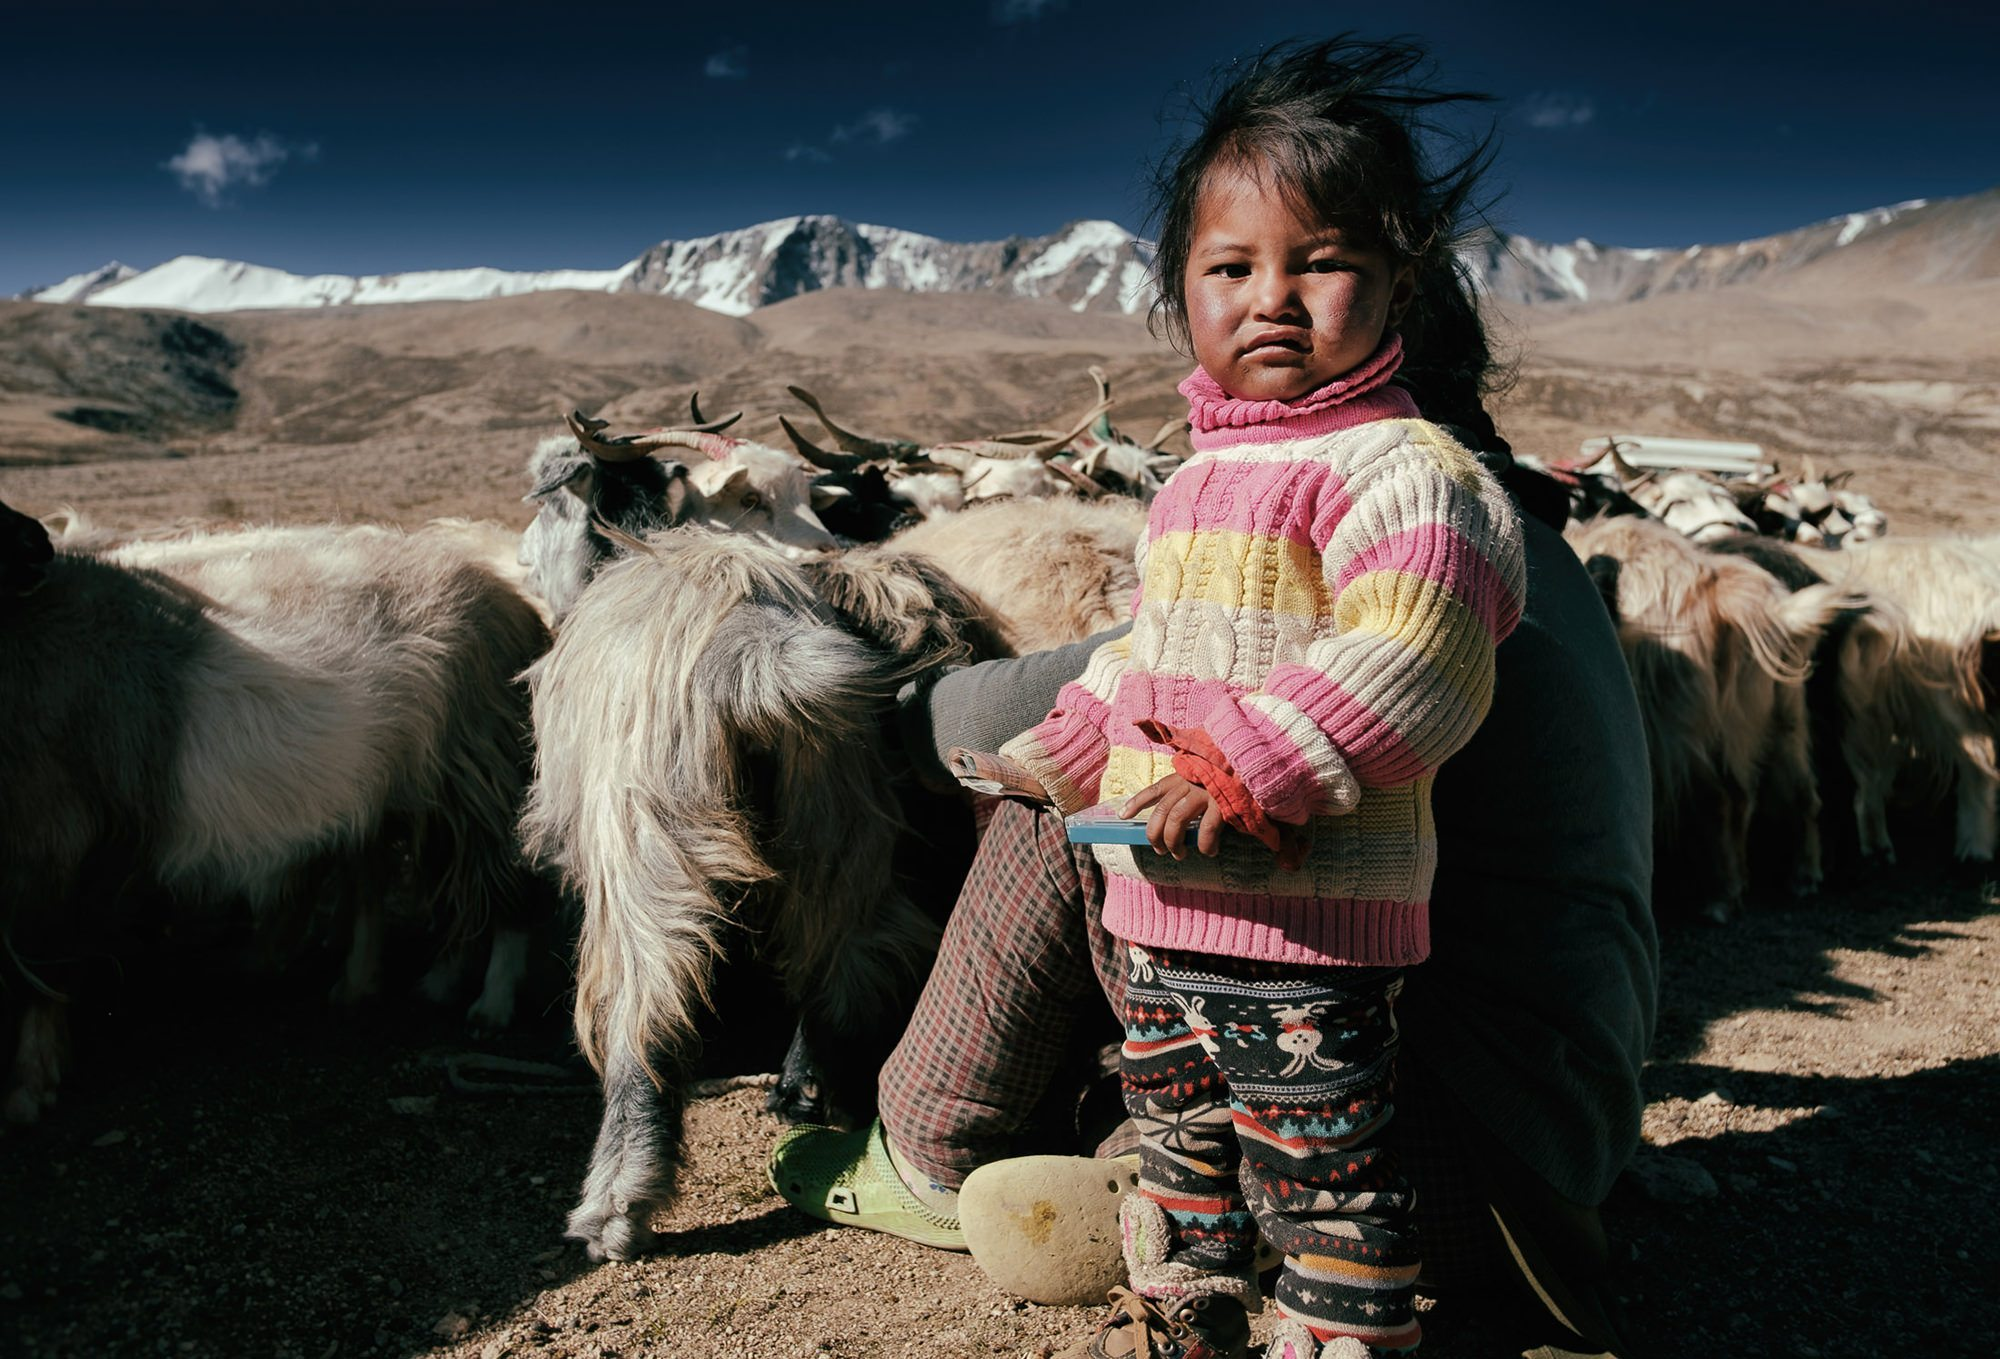 a young Changpa girl helps her mother milk the goats near Tso Moriri Lake, Ladakh